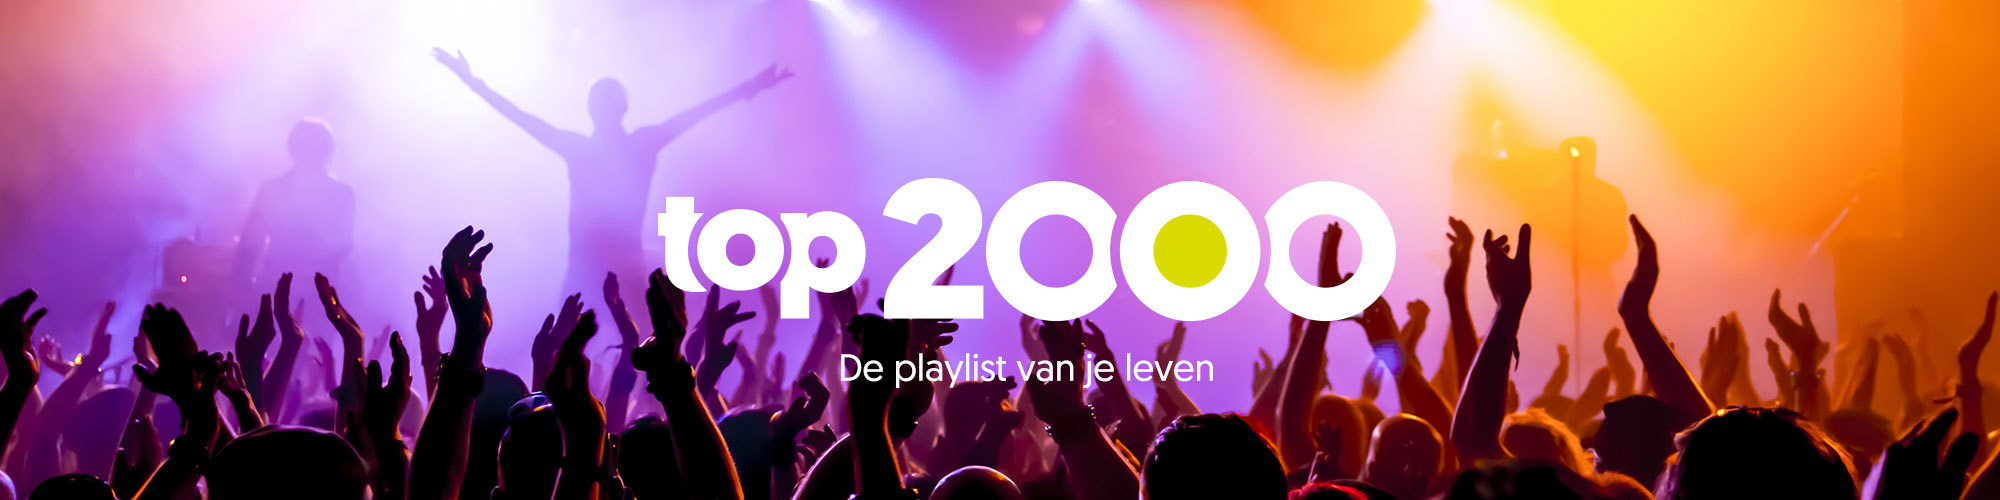 Joe carrousel top2000 finaal playlistvanjeleven 6